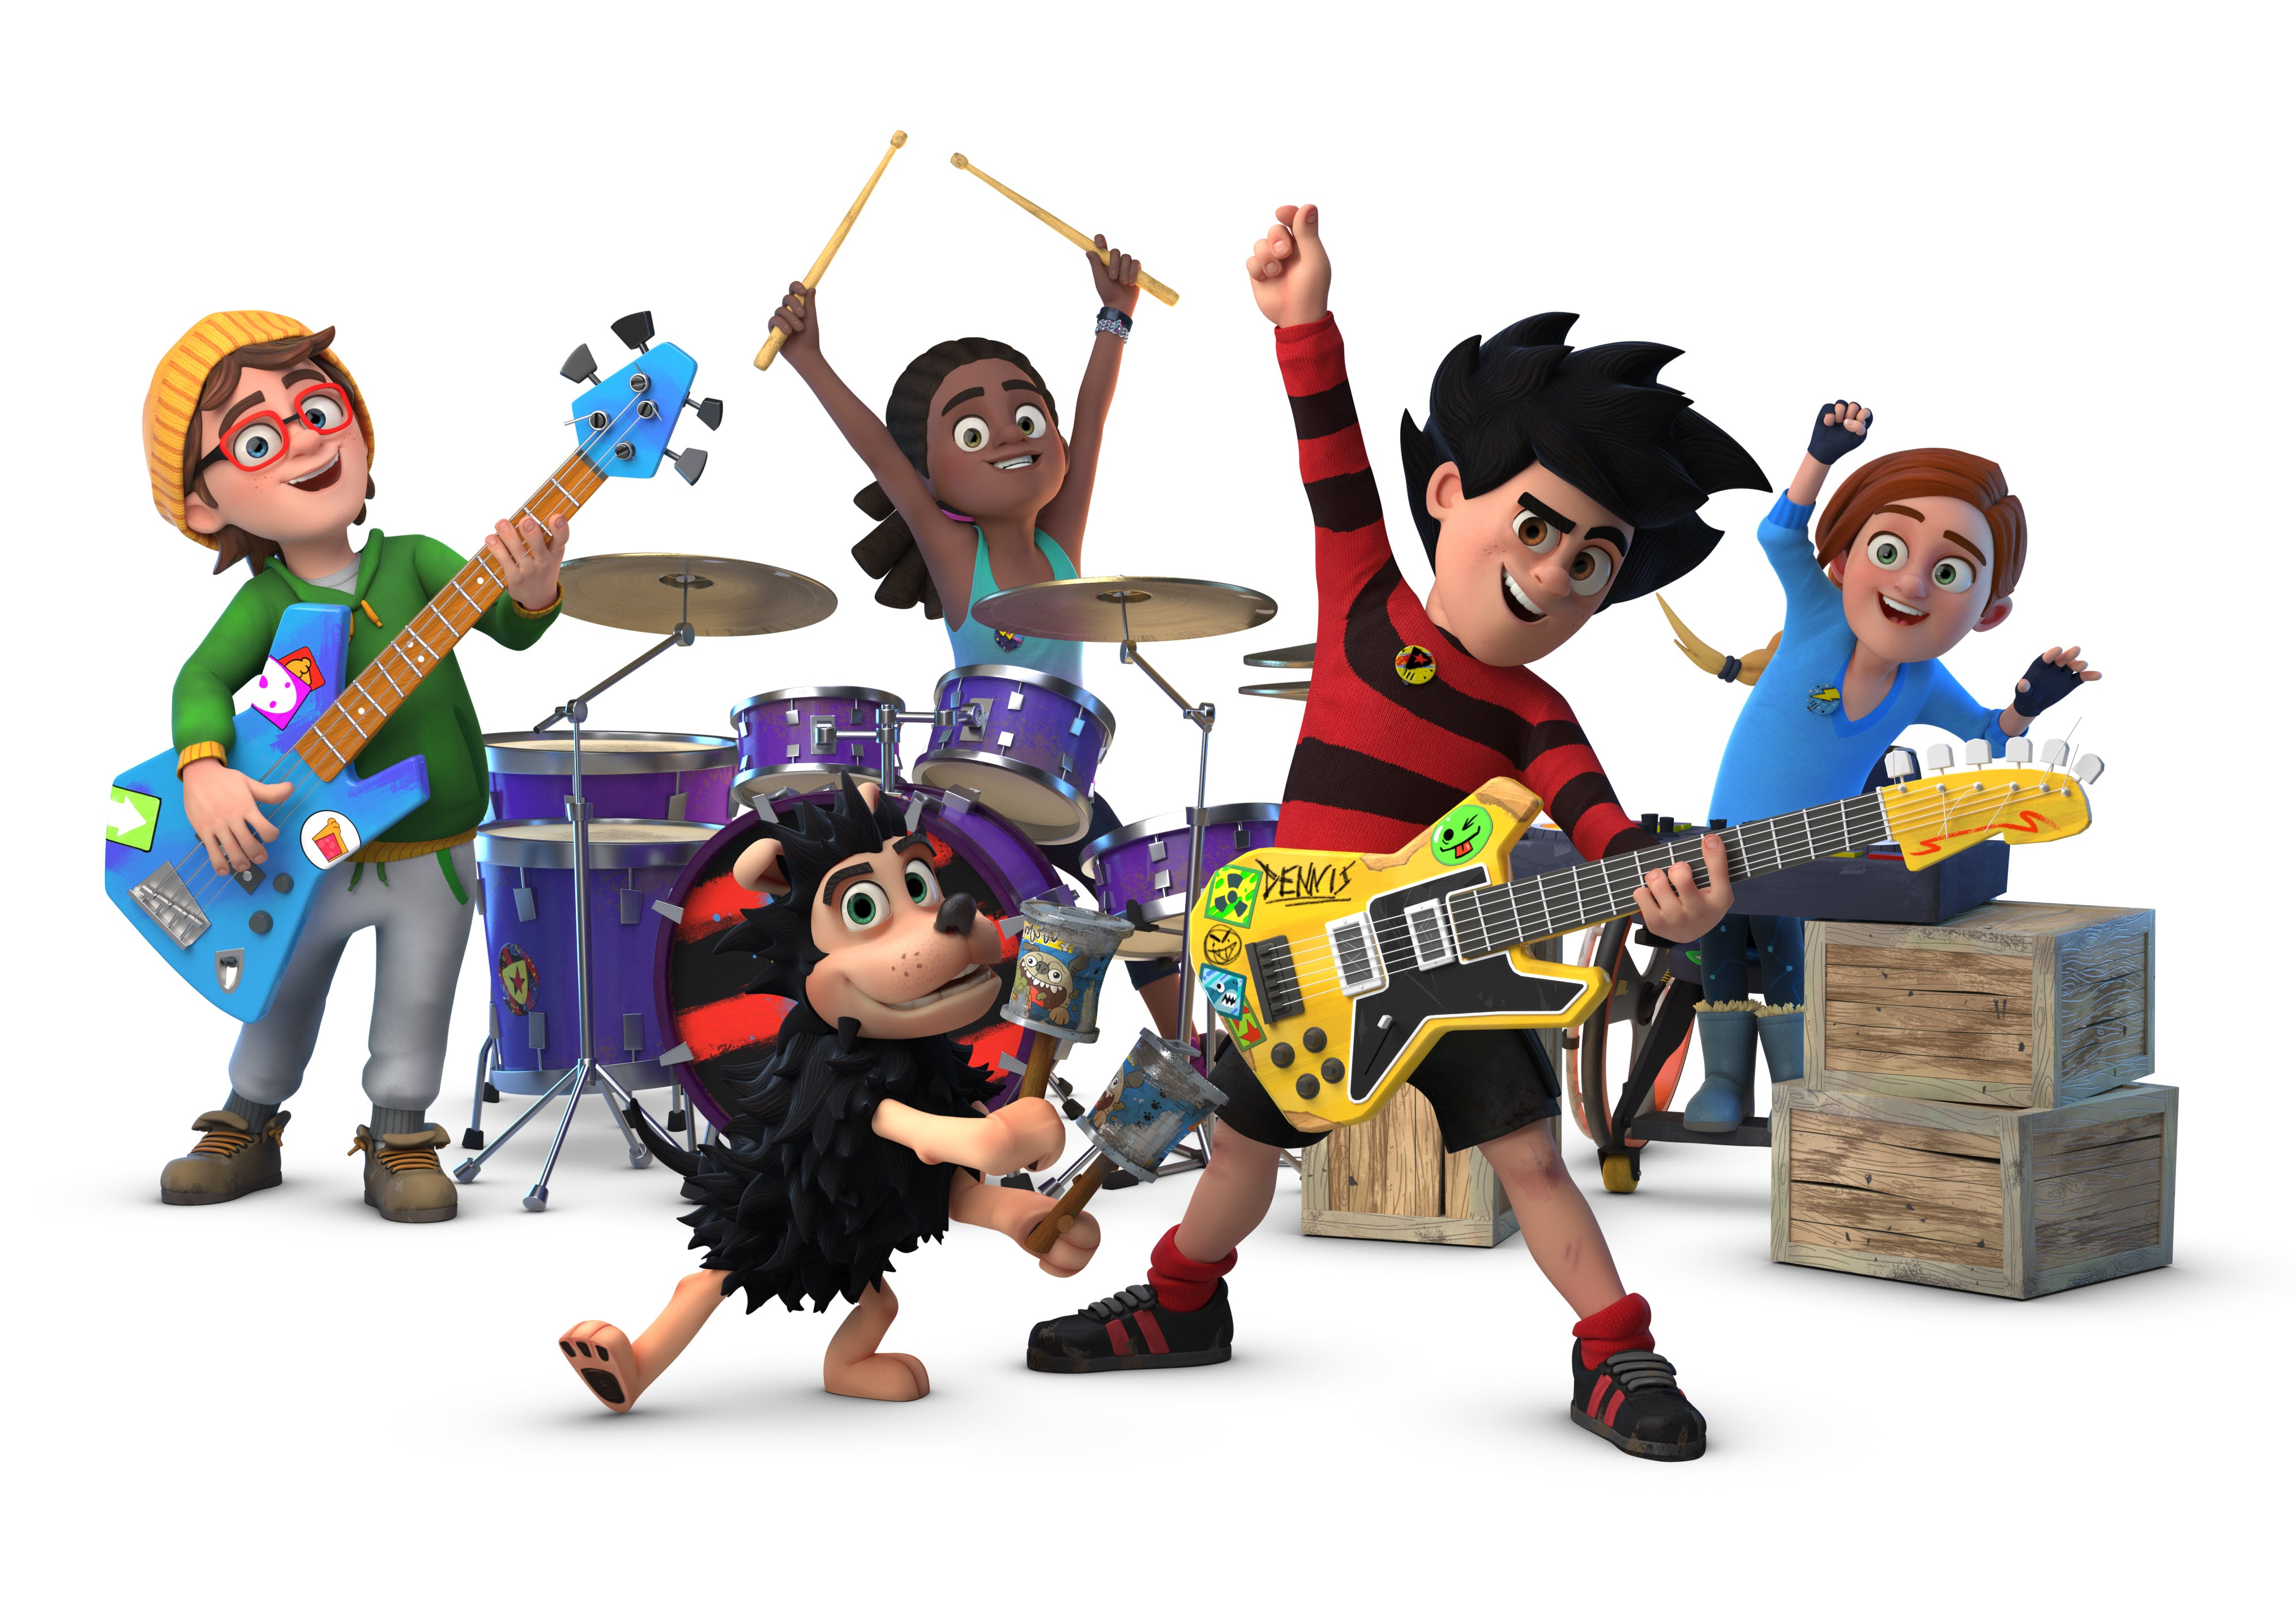 Rockin' out across Beanotown, it's Dennis and the Dinmakers